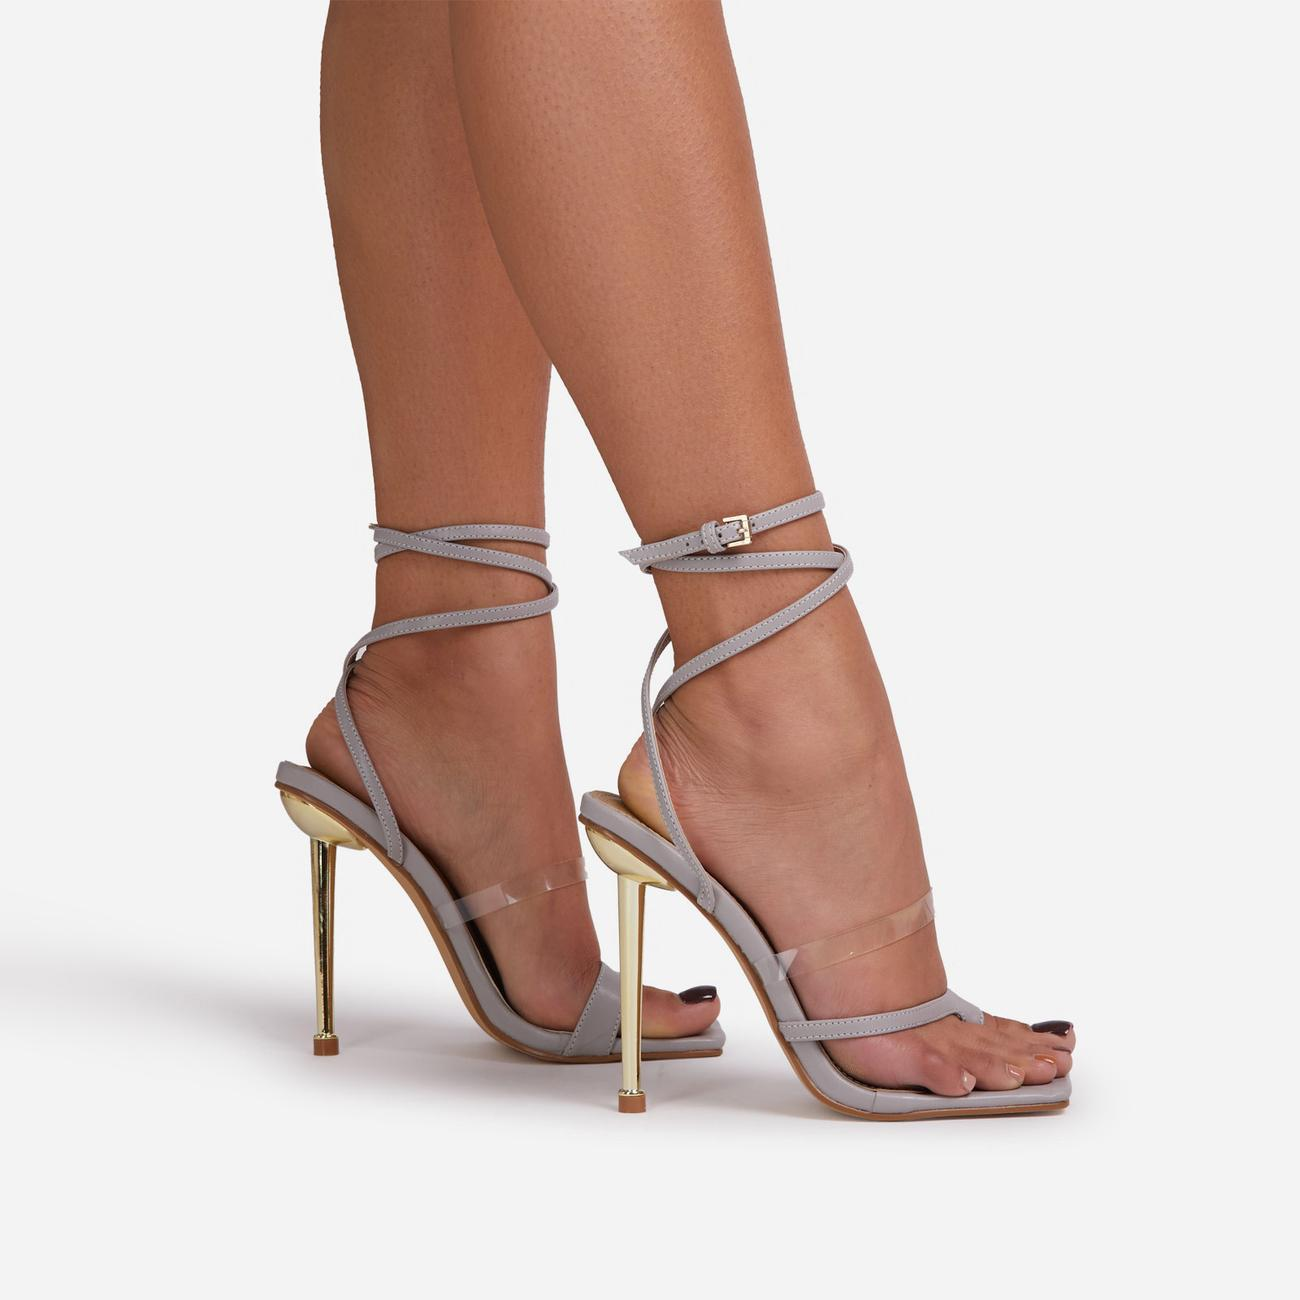 Blaze Lace Up Clear Perspex Square Toe Metallic Heel Grey Faux Leather Image 2